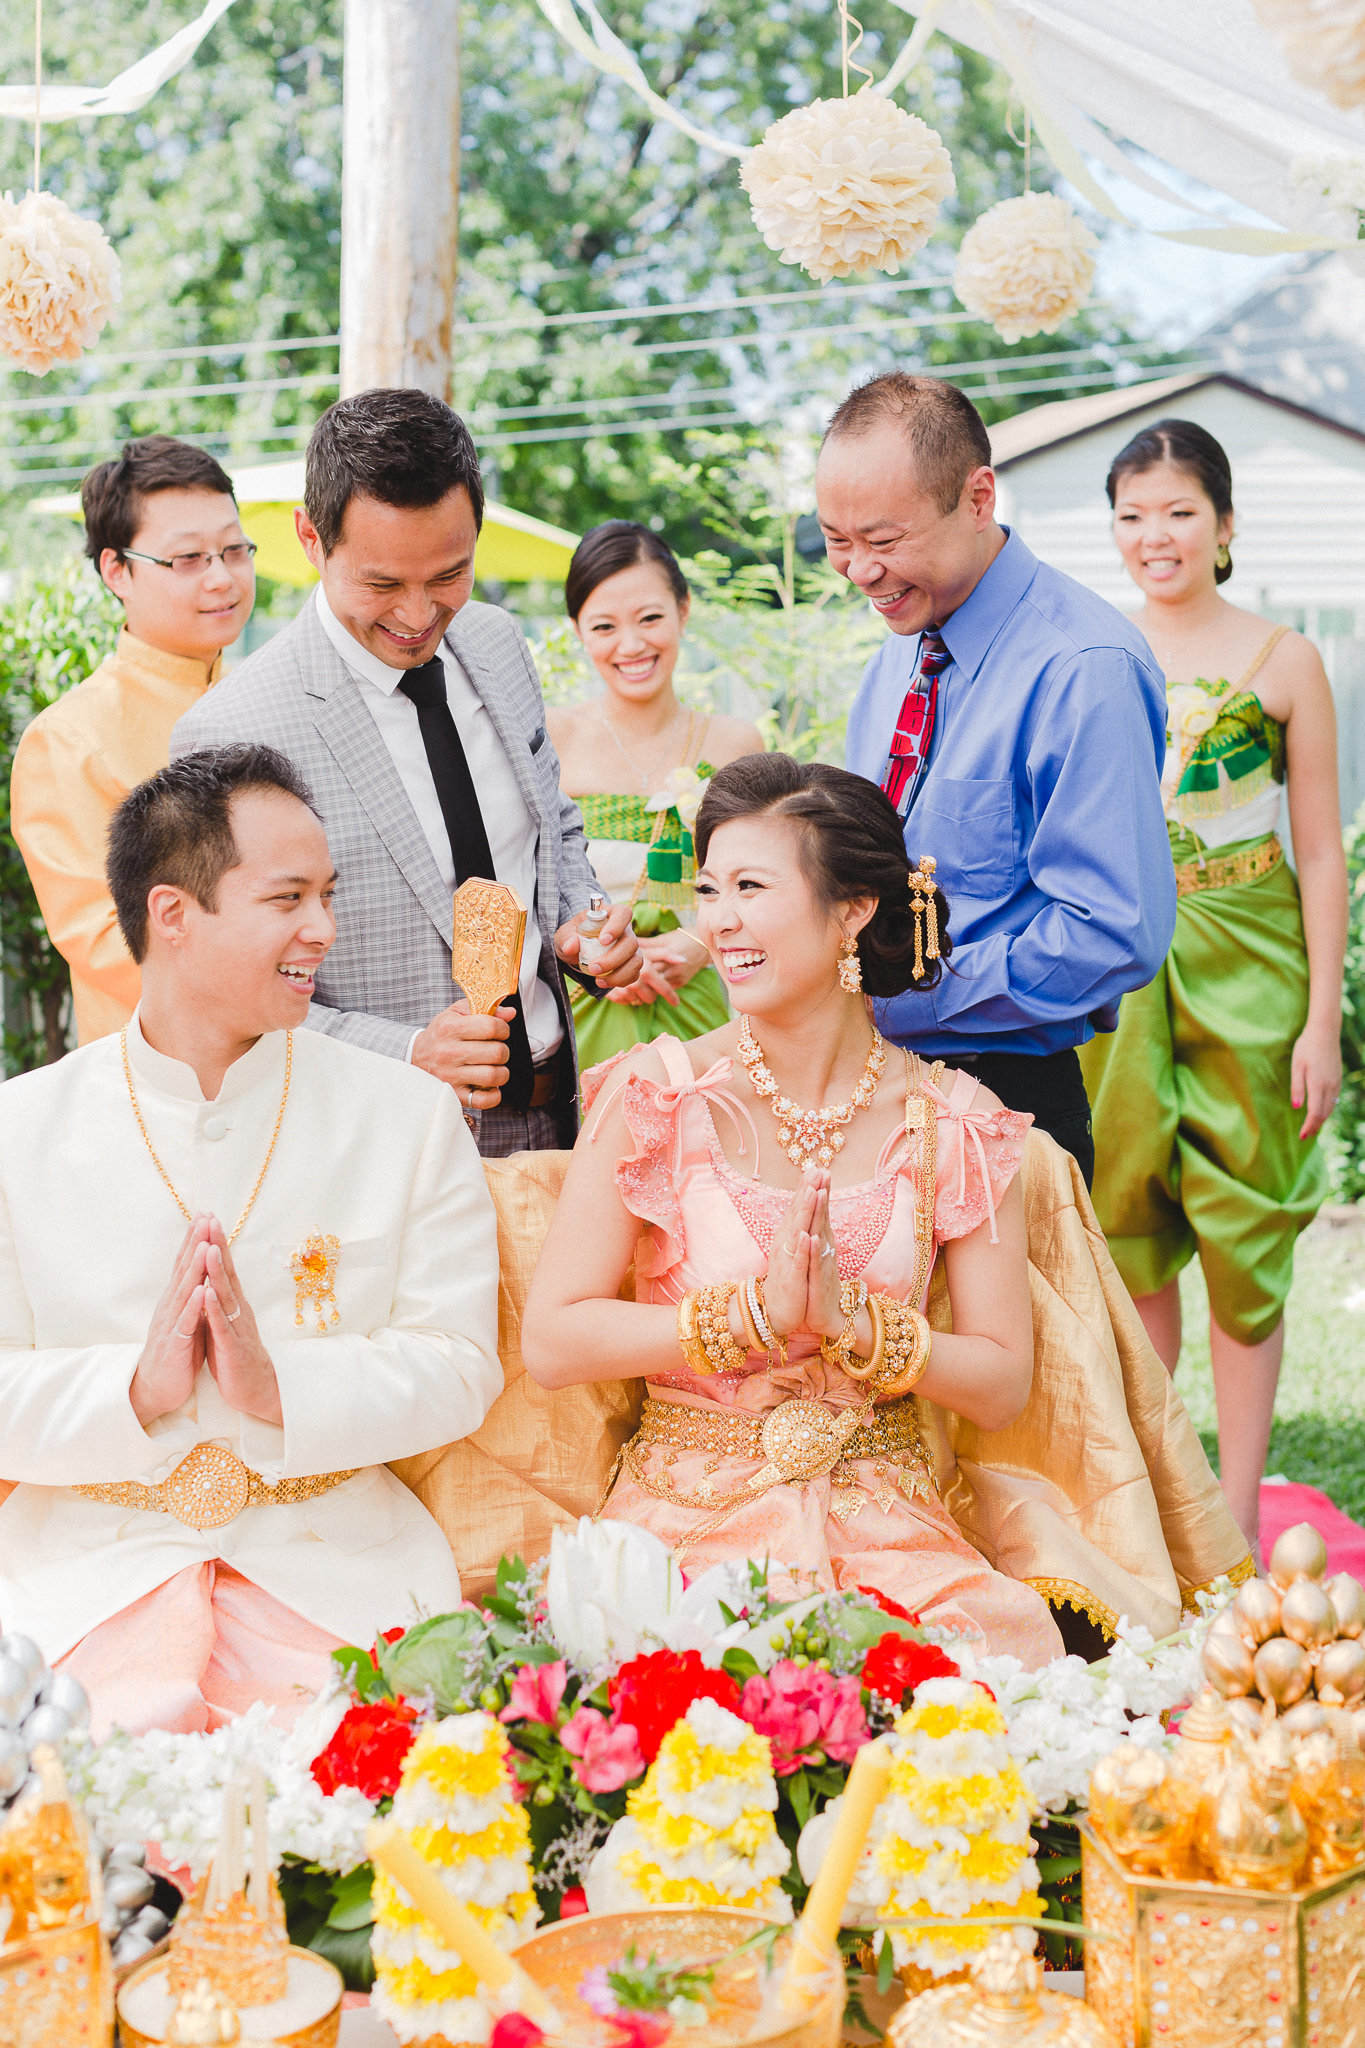 photographe-montreal-mariage-culturel-traditionnel-cambodgien-lisa-renault-photographie-traditional-cultural-cambodian-wedding-51